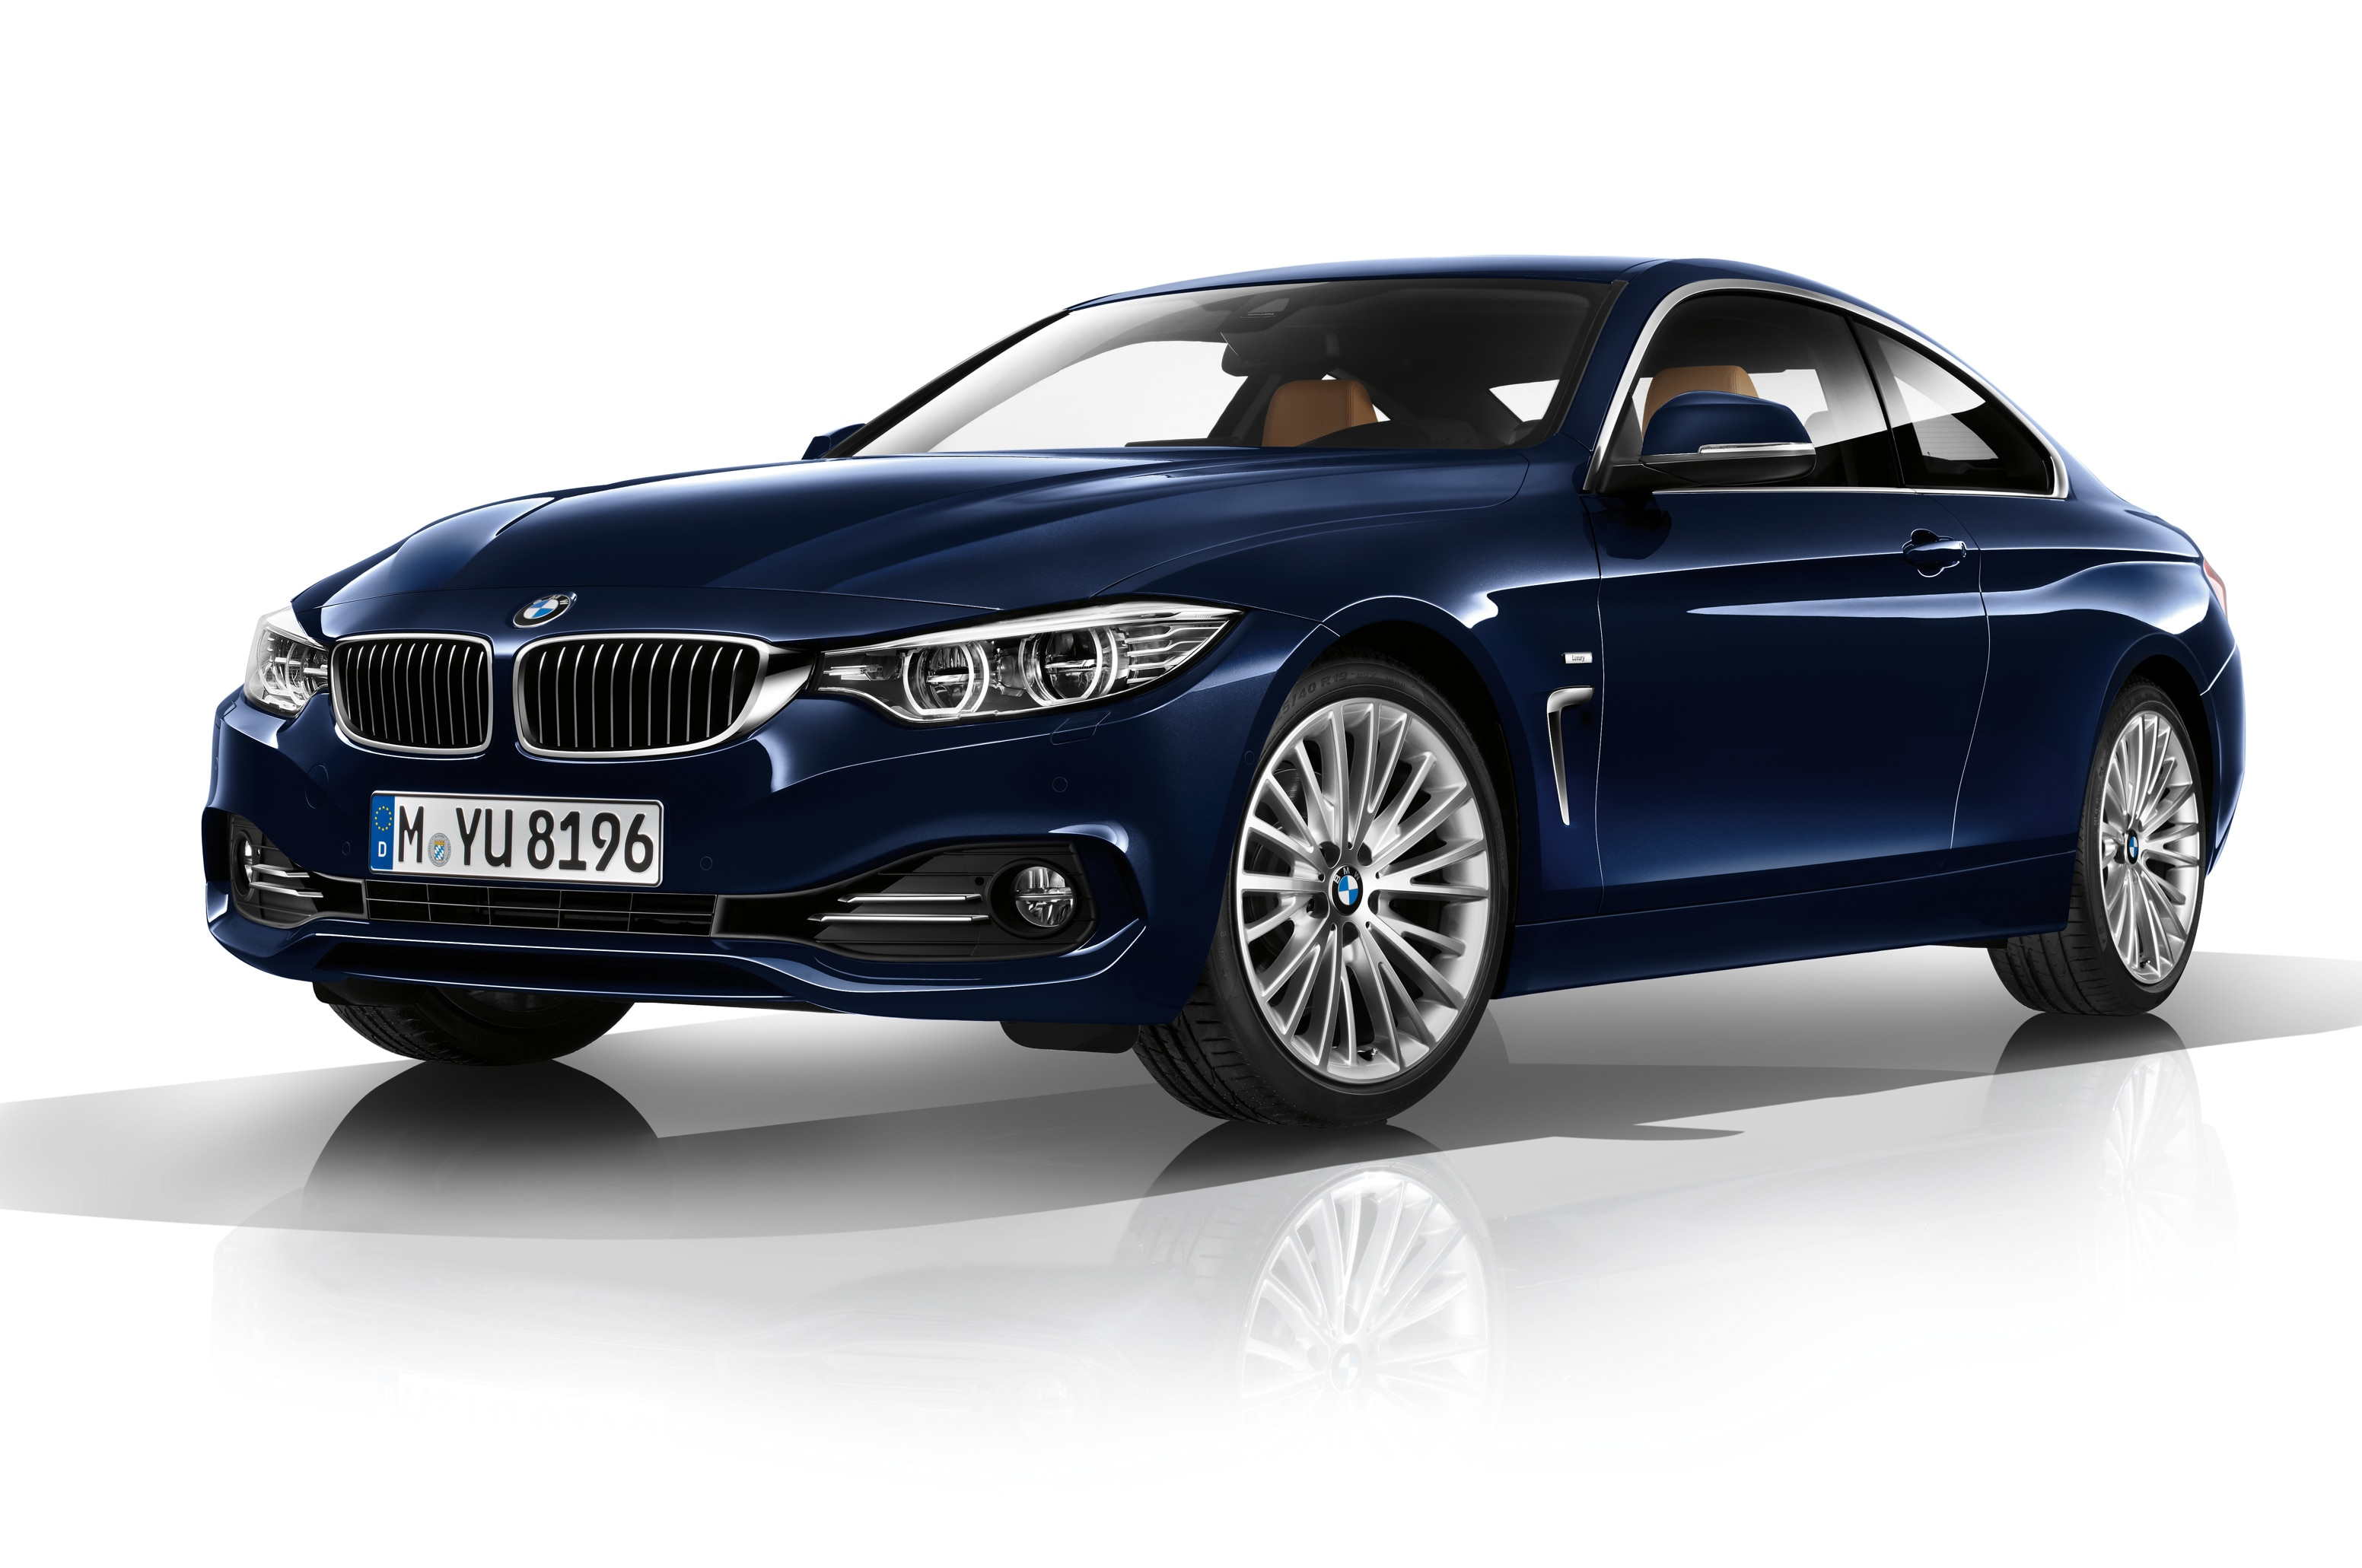 2014 BMW 4 Series Build-Your-Own Feature Available